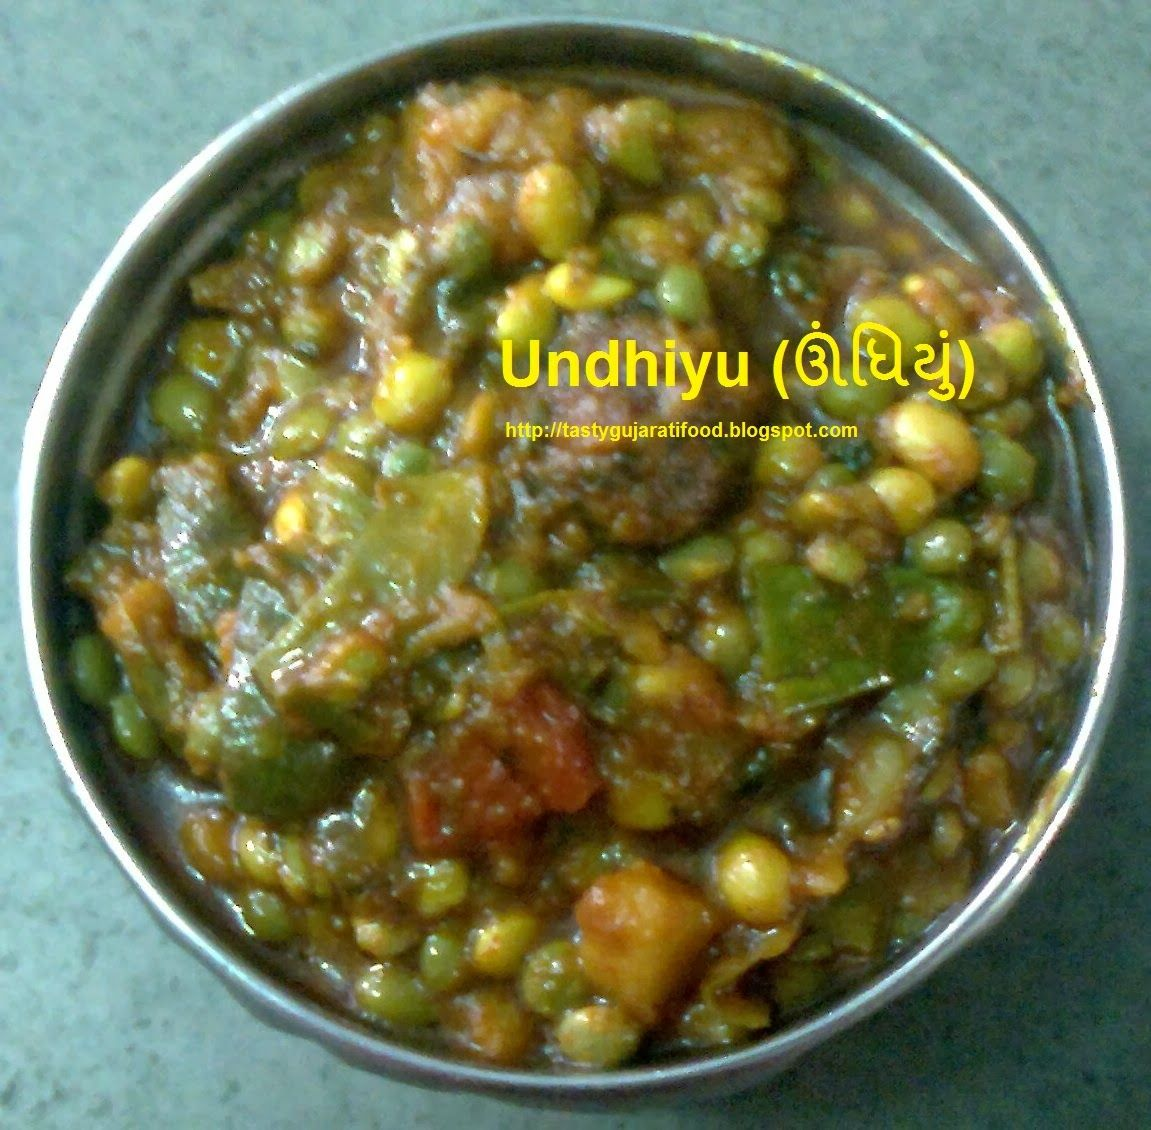 Enjoy spicy undhiyu recipe in gujarati language by tasty gujarati enjoy spicy undhiyu recipe in gujarati language by tasty gujarati food recipes blog celebrate uttarayan forumfinder Image collections